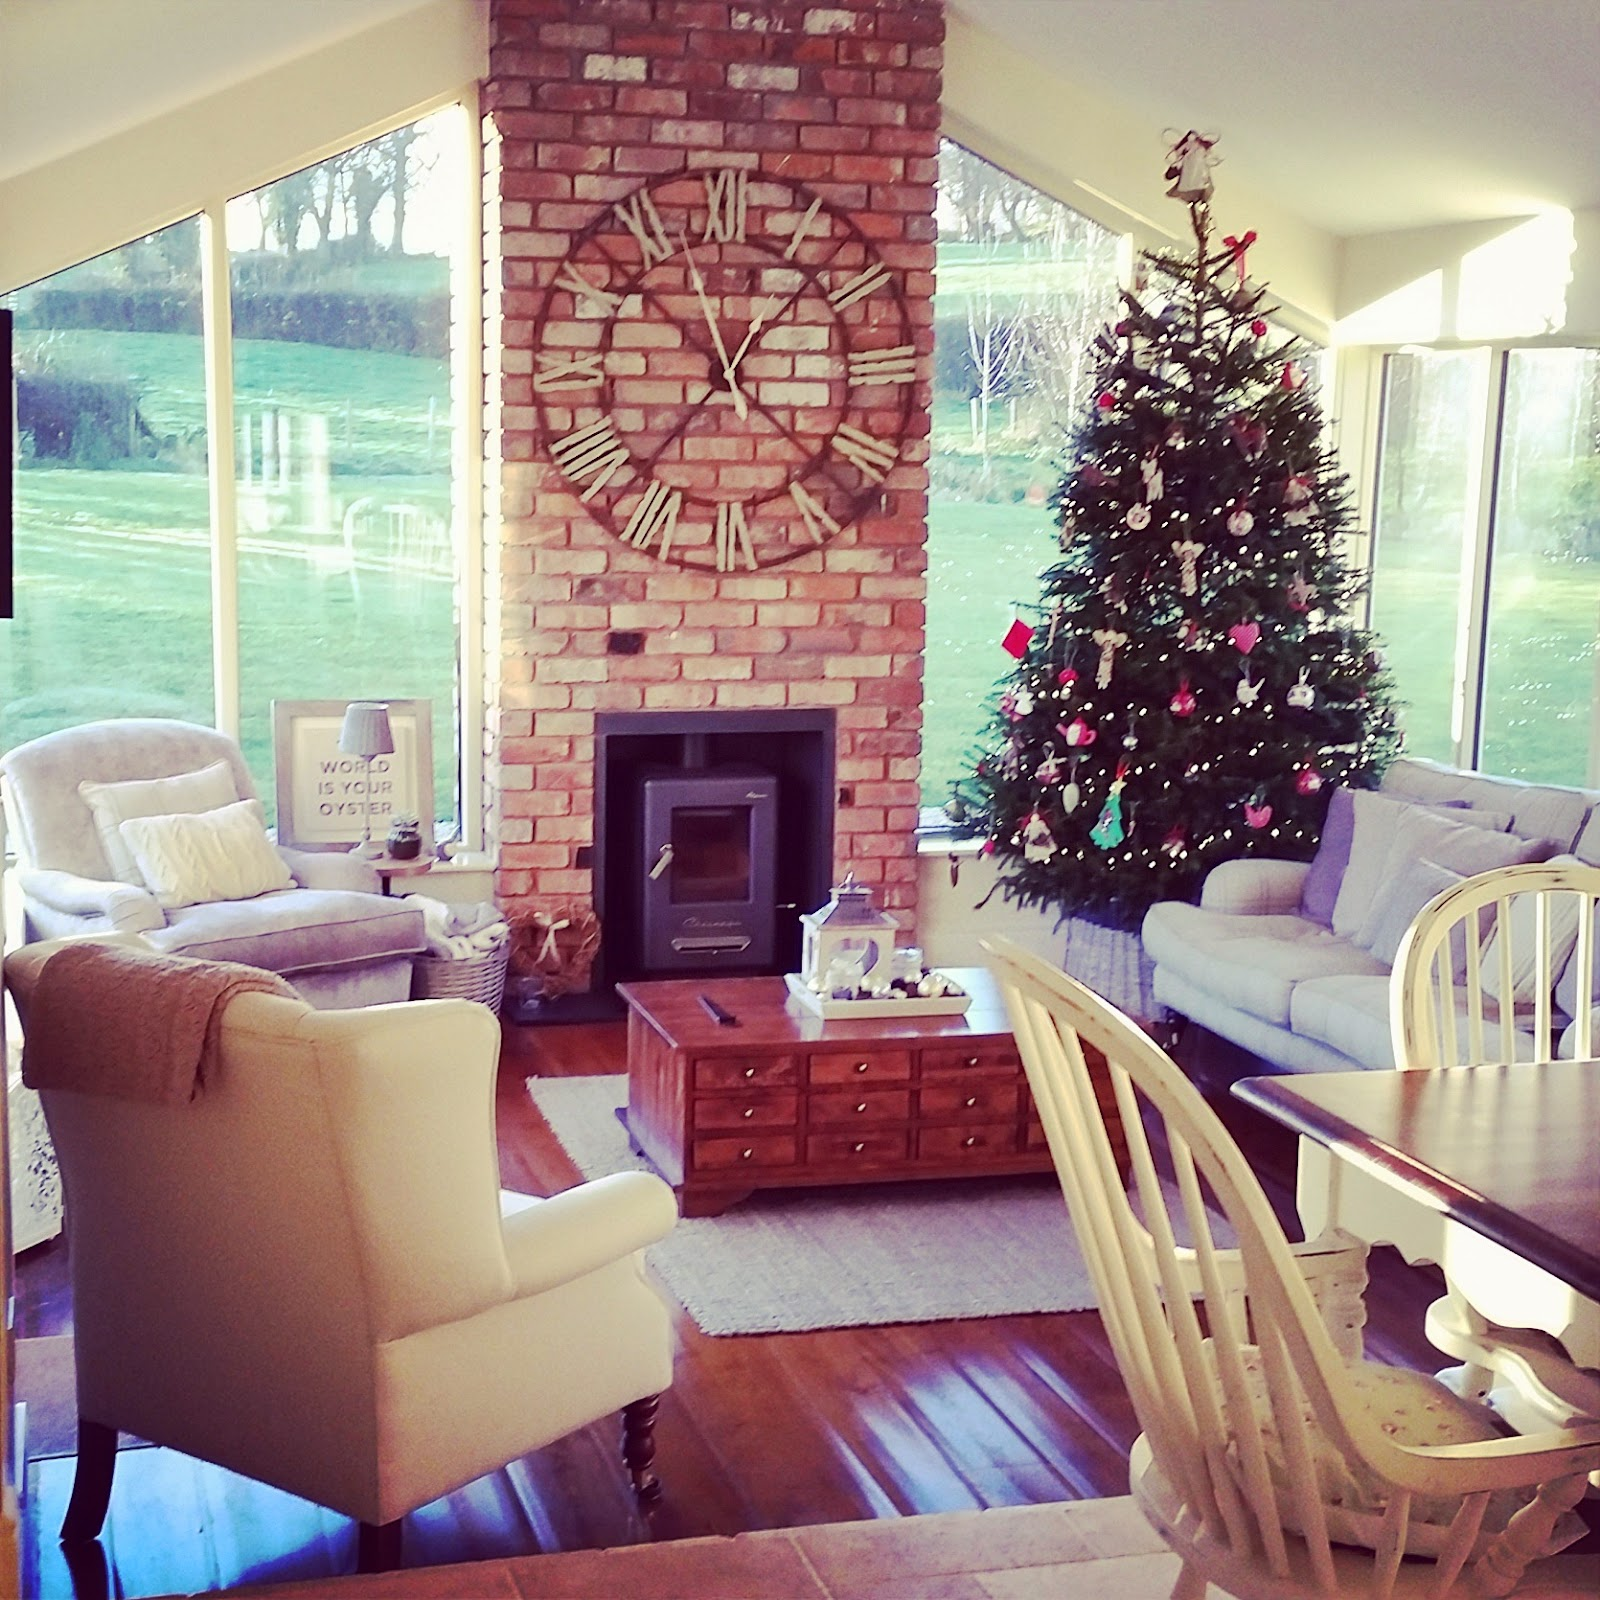 Deck the Halls... - Life at The Little Wood